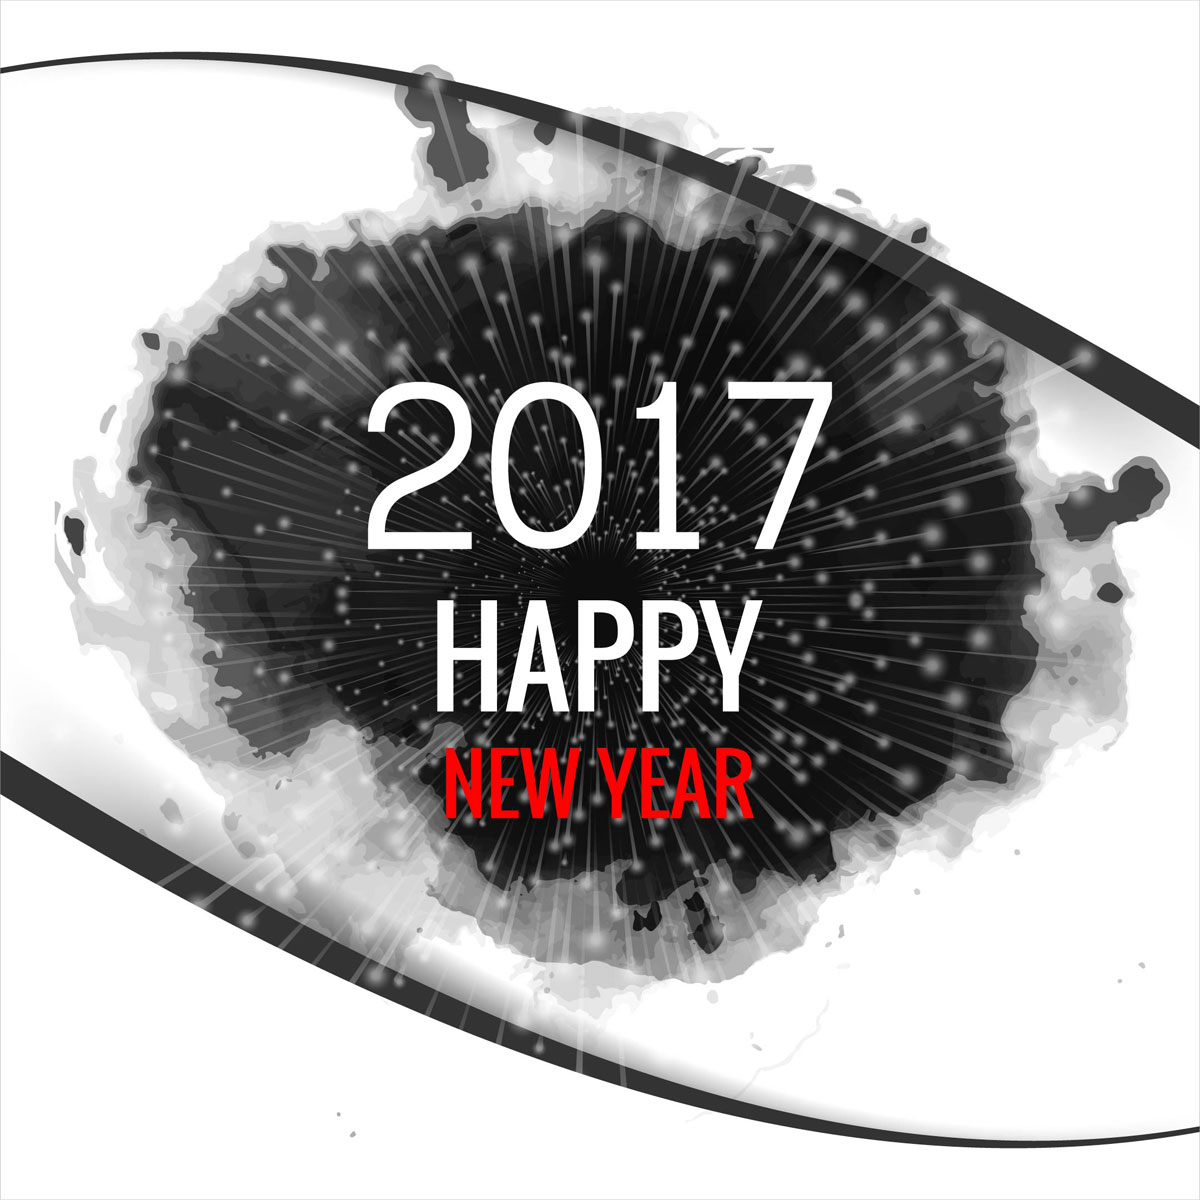 happy new year 2017 images collection